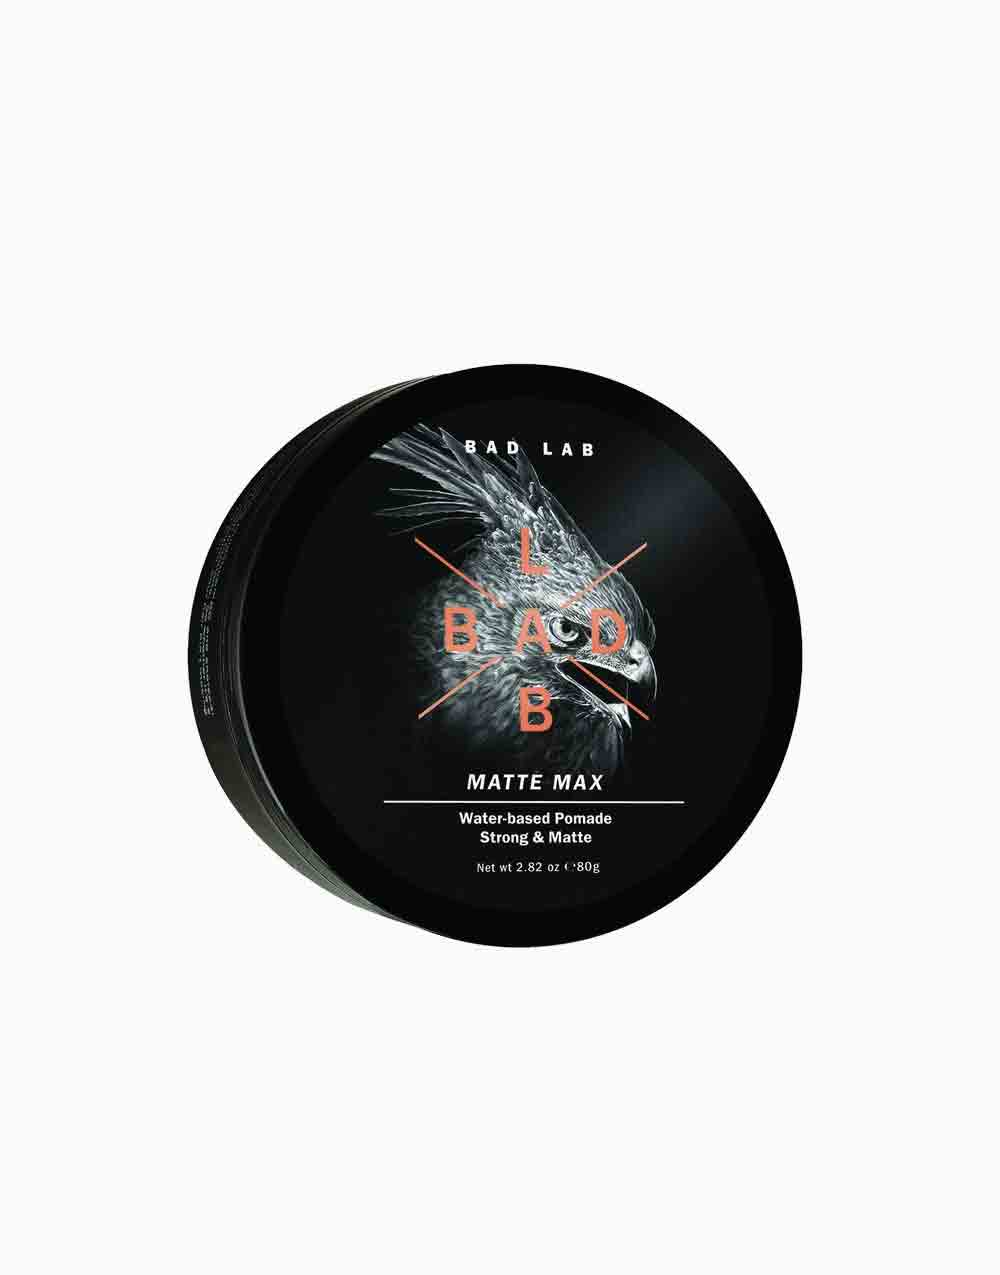 Matte Max Water Based Pomade by Bad Lab